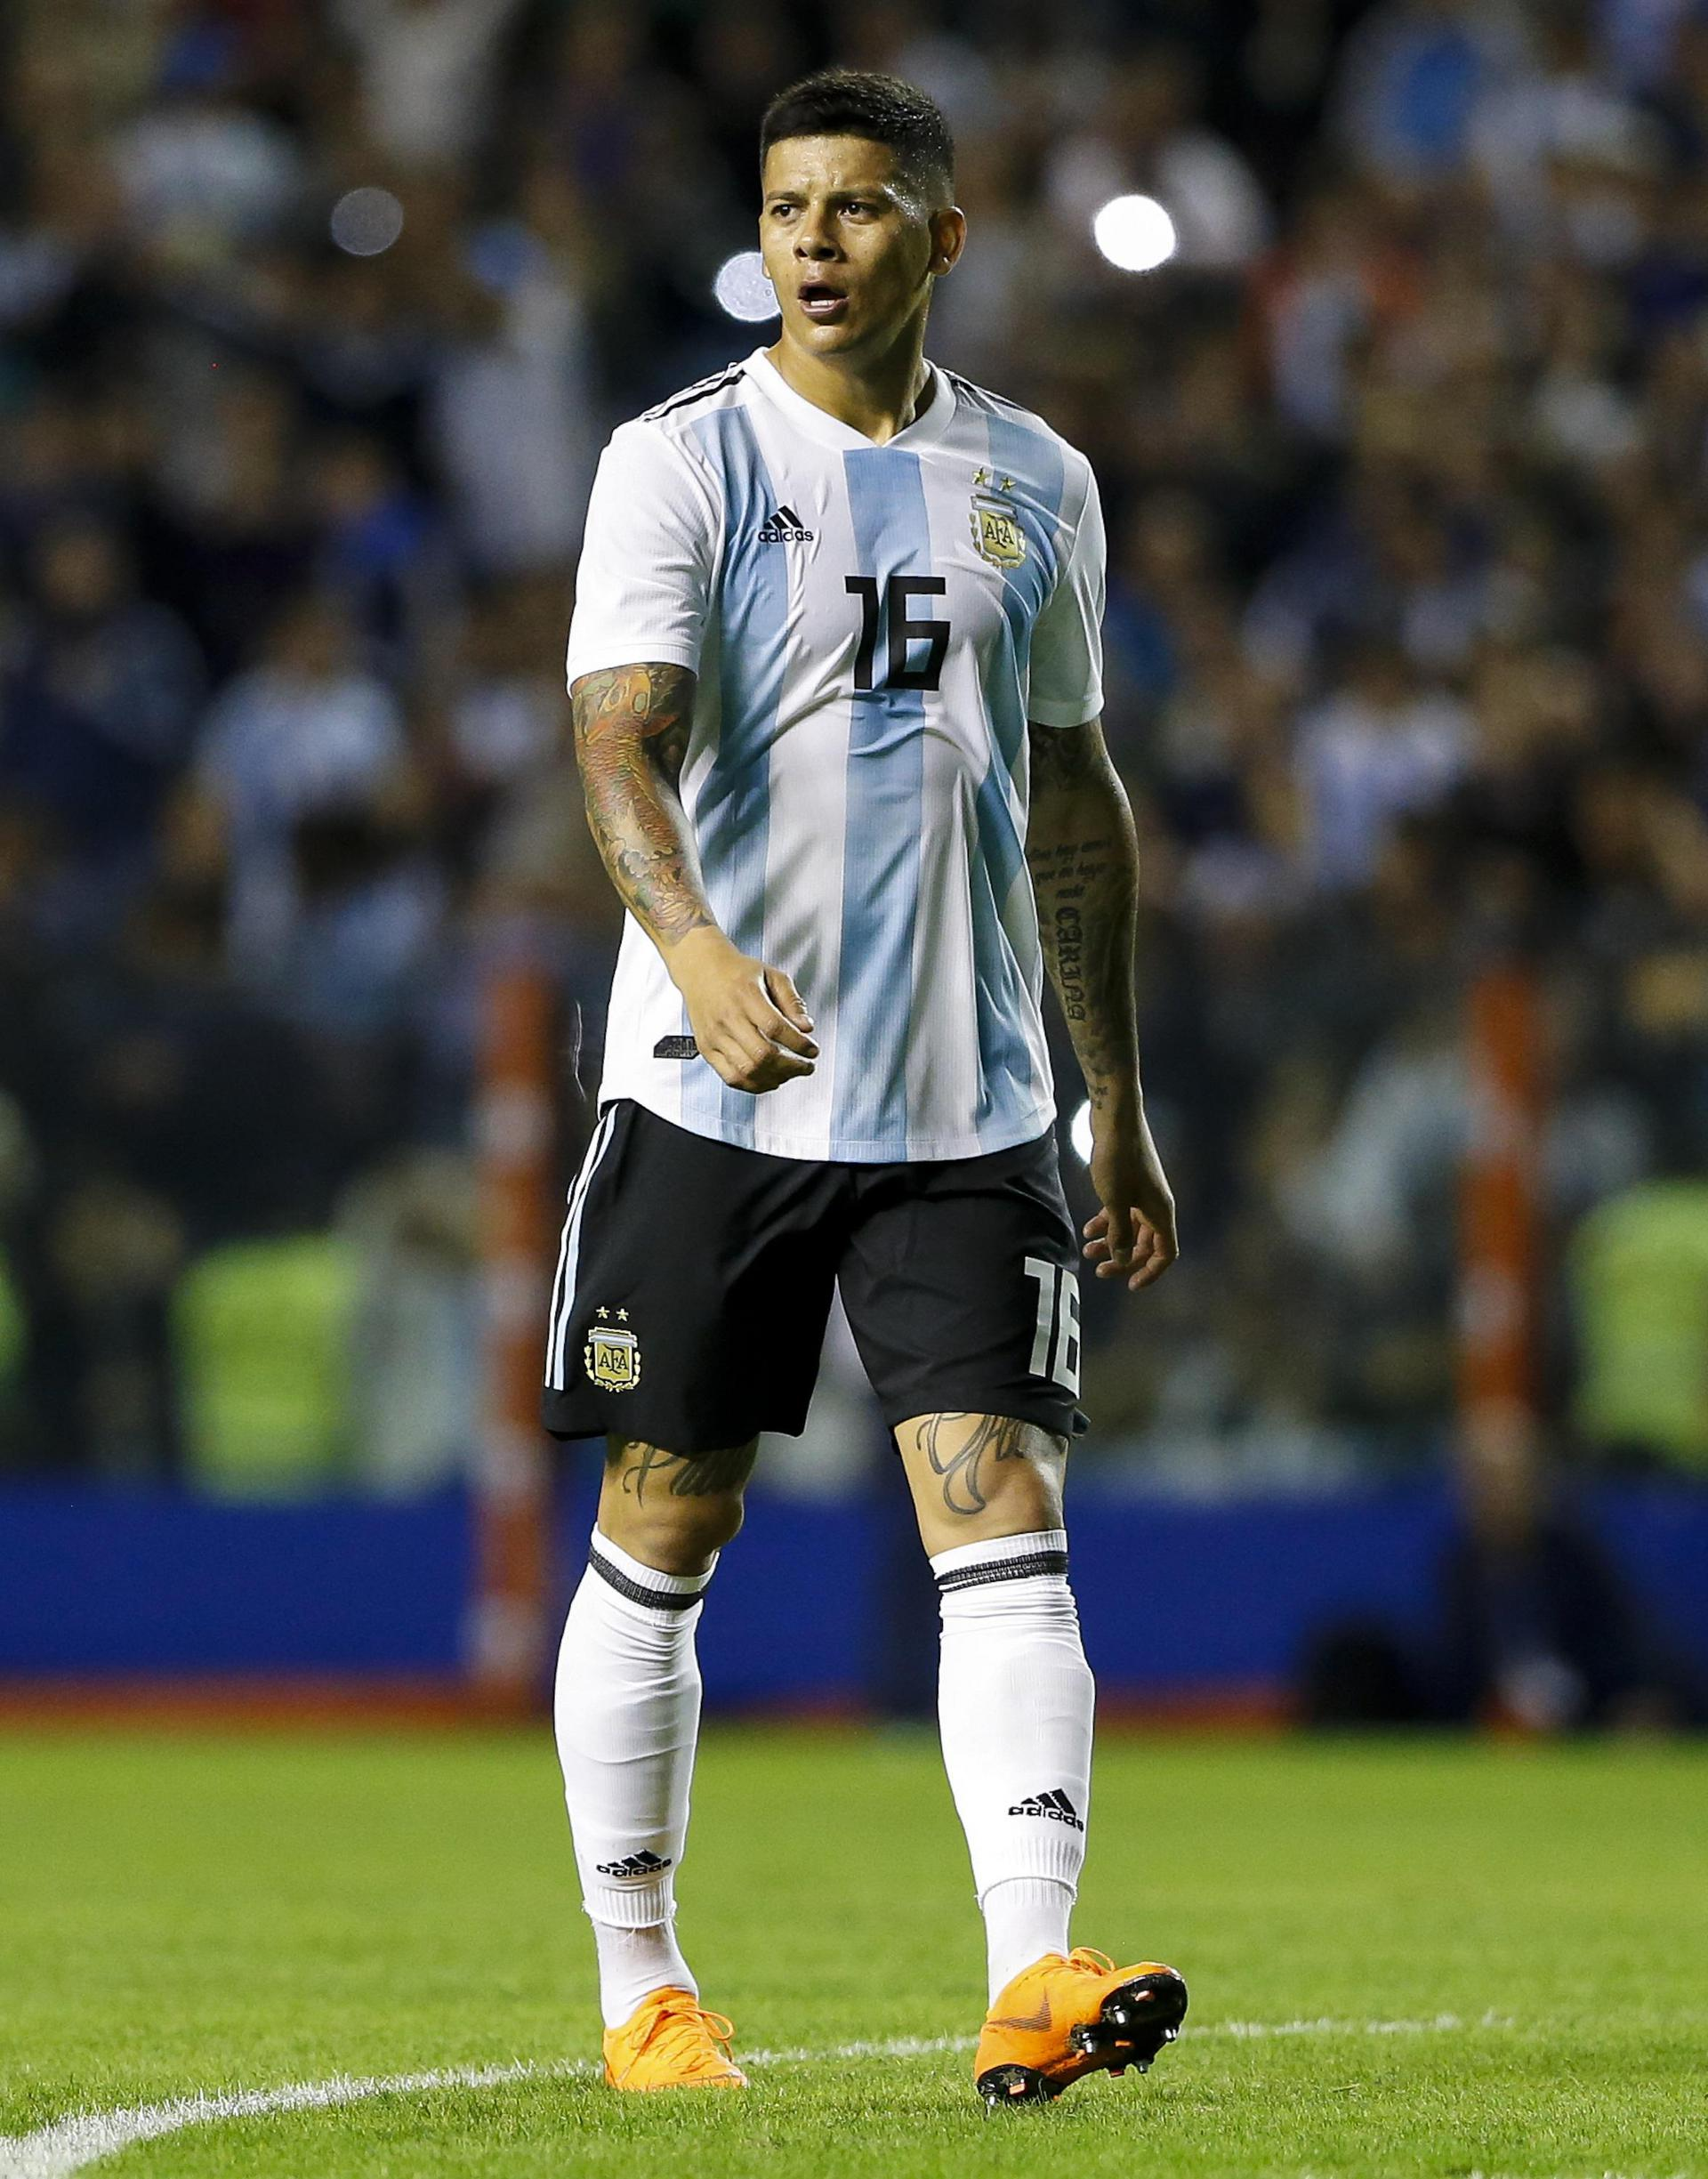 Marcos Rojo in action during Argentina's friendly against Haiti.